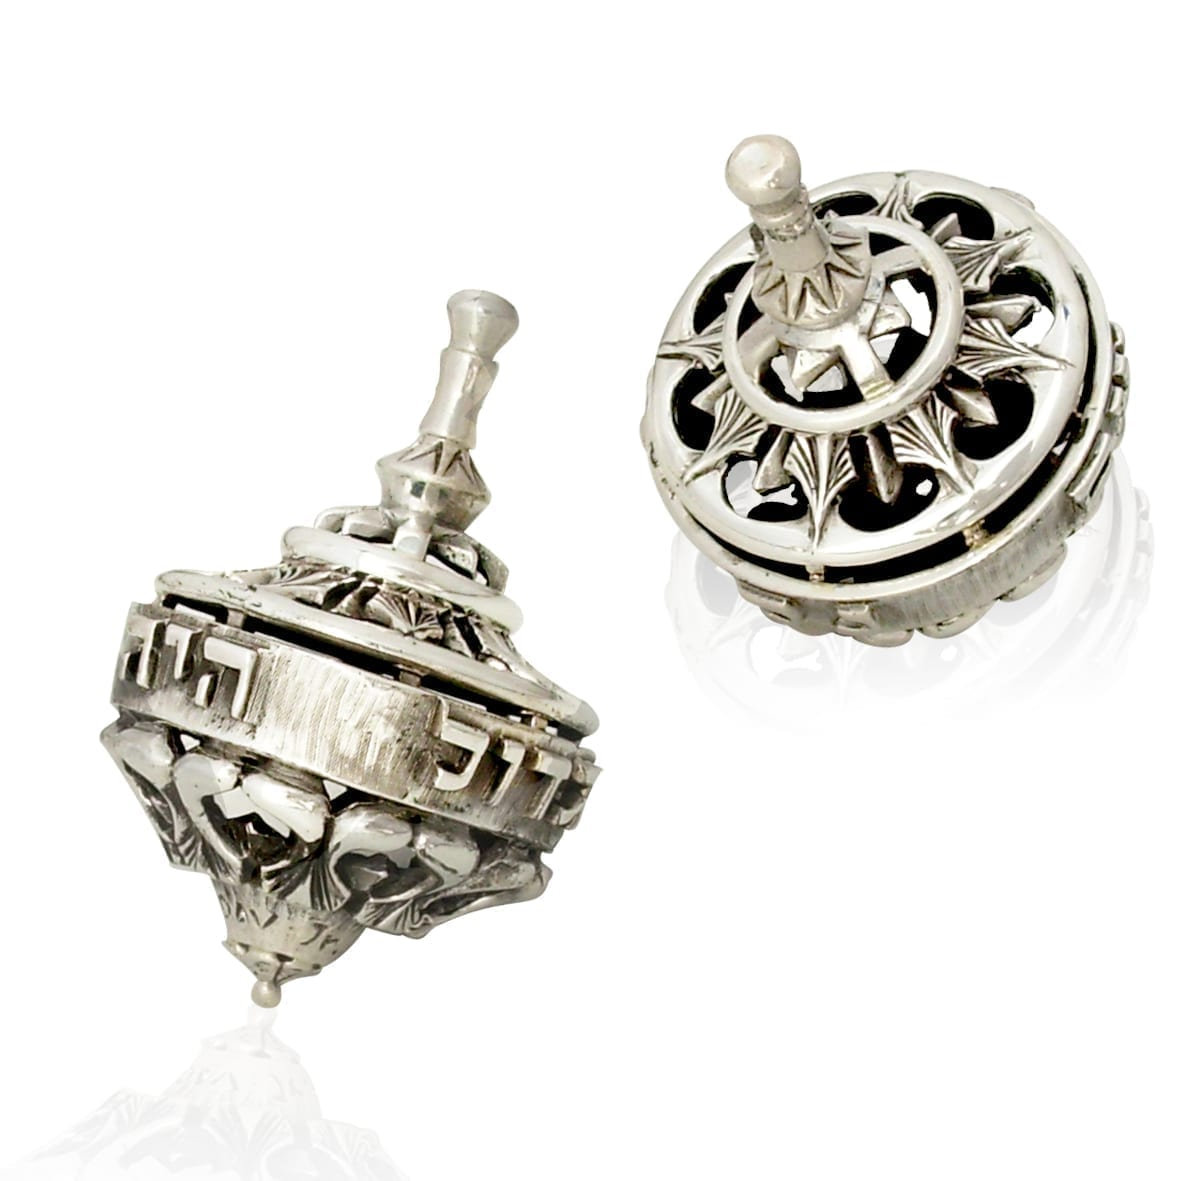 Sterling silver dreidel with neo-gothic patterns. Hannukah Judaica gifts made in Israel